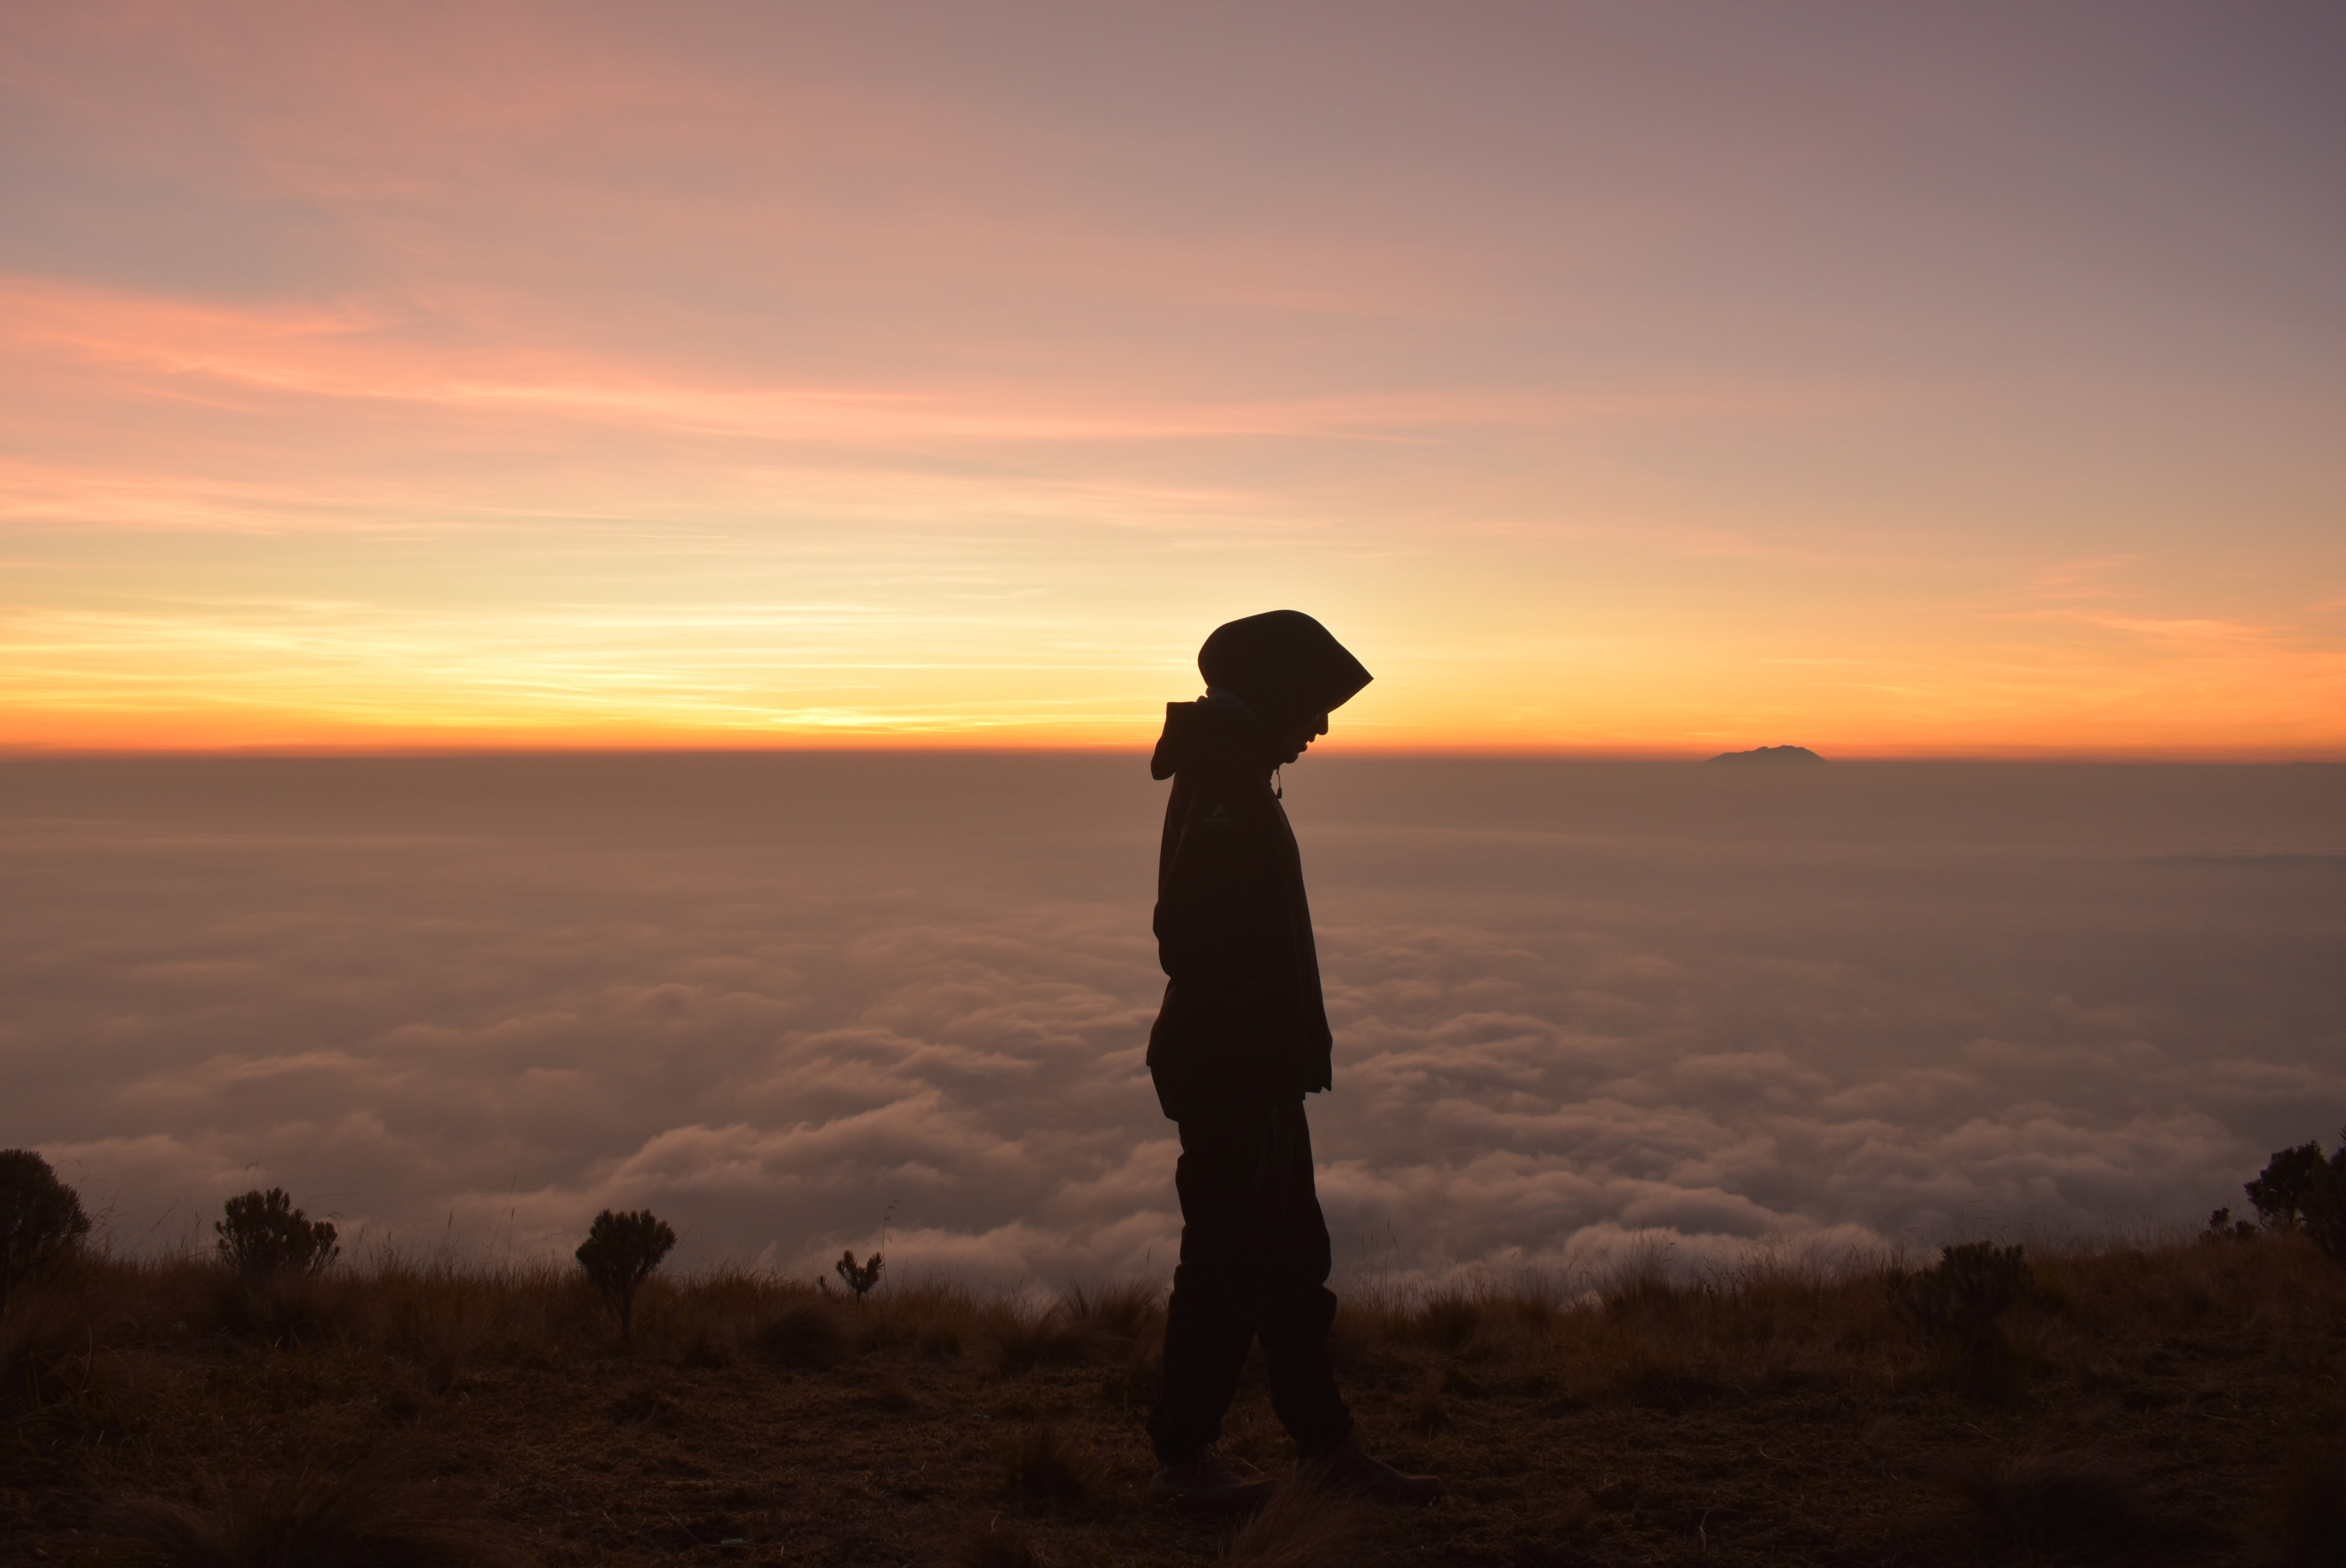 silhouette of person wearing hoodie standing near cliff with clouds ahead during golden hour